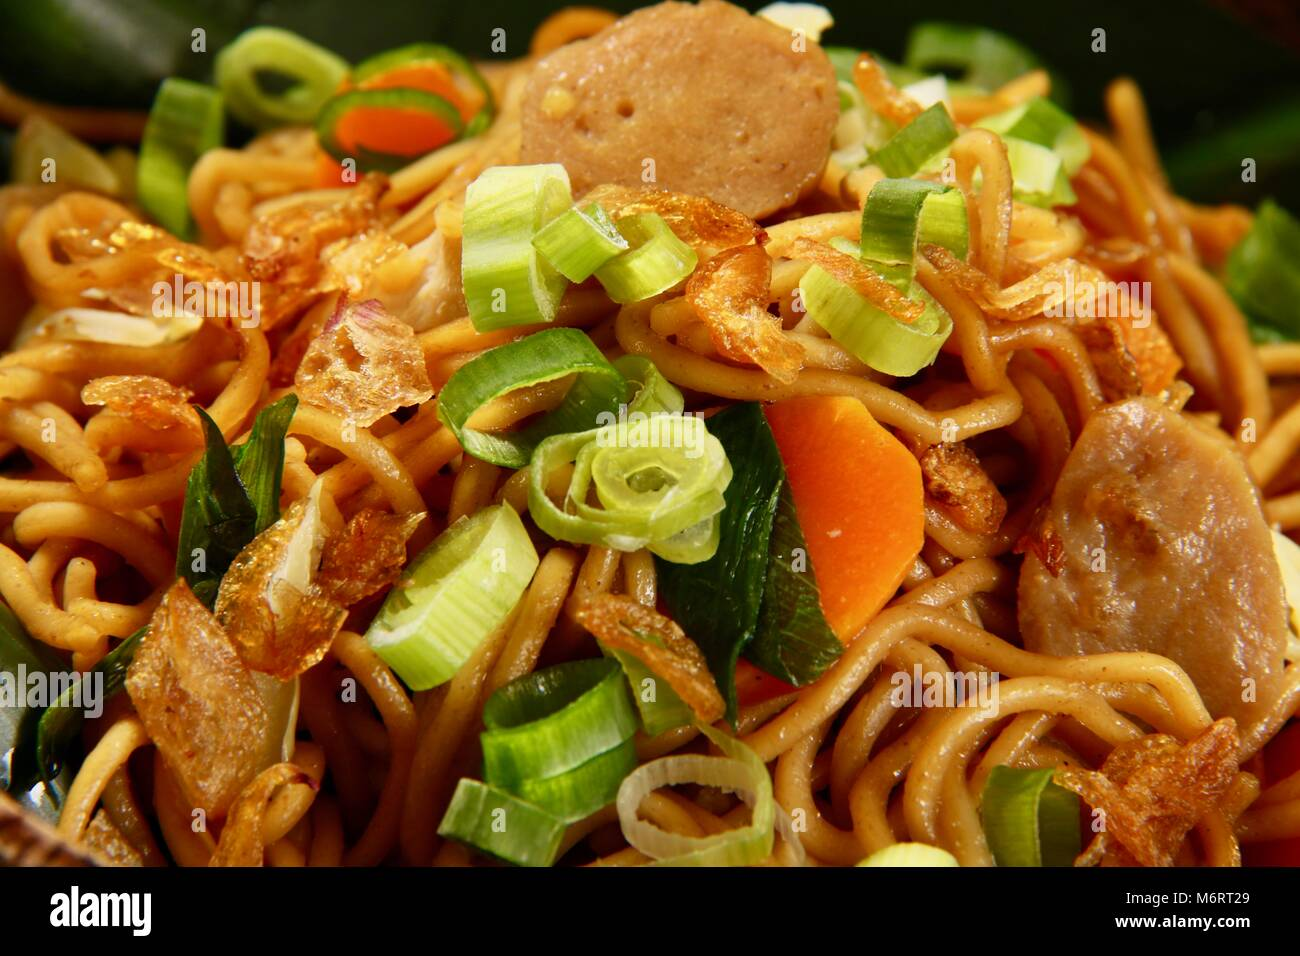 Mie Goreng Jawa Stir Fried Egg Noodles With White Cabbage Carrot Stock Photo Alamy